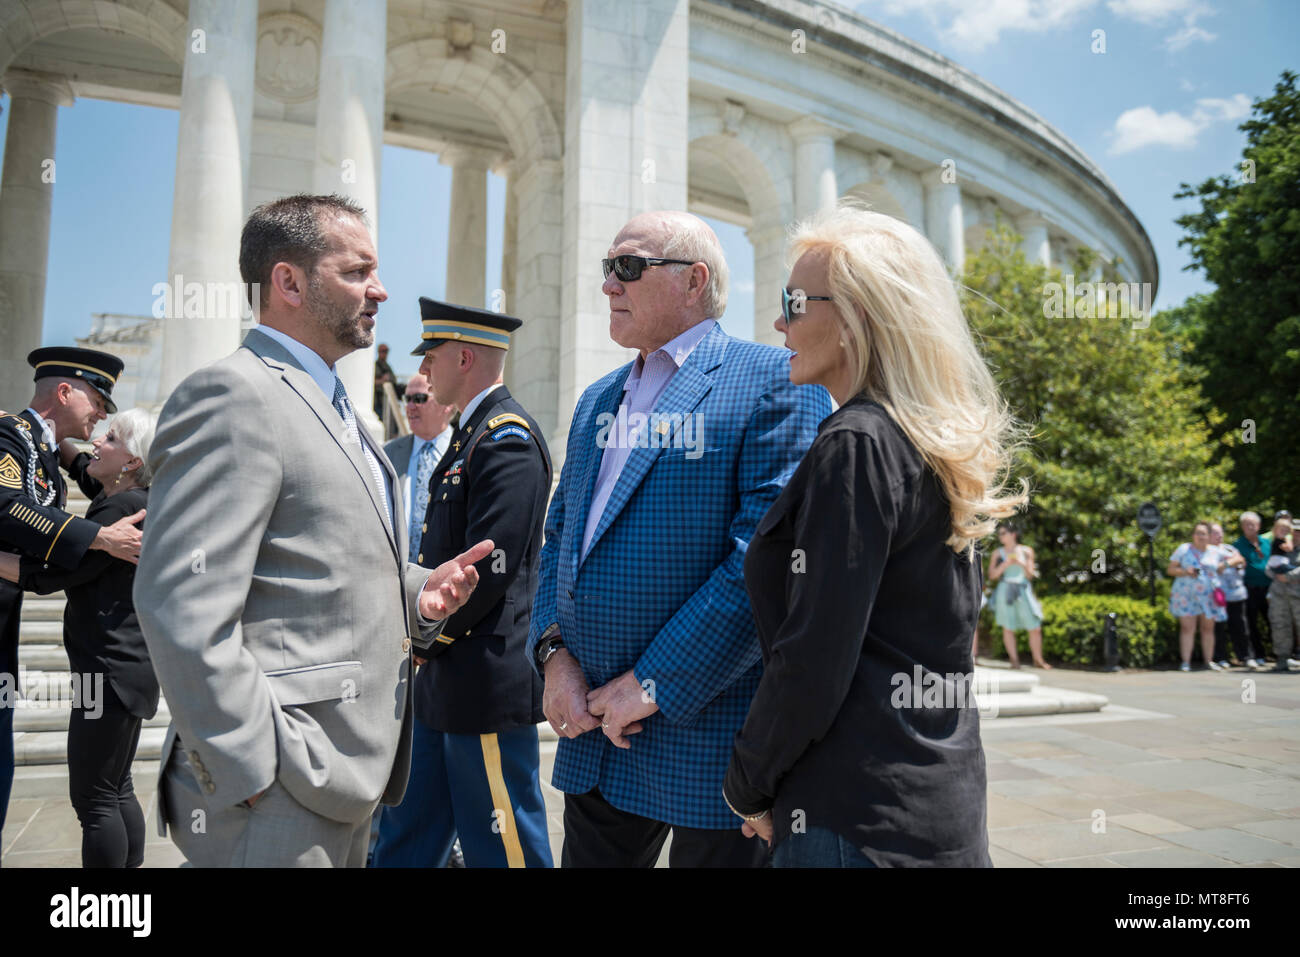 Micheal Migliara (left), director of events and ceremonies, Arlington National Cemetery; Terry Bradshaw (center), representative of United Service Organization (USO) Metro; and his wife, Tammy Bradshaw (right); speak at the west steps of the Memorial Amphitheater at Arlington National Cemetery, Arlington, Virginia, May 11, 2018. Bradshaw participated in an Army Special Honors Wreath-Laying at the Tomb of the Unknown Soldier during his visit. (U.S. Army photo by Elizabeth Fraser / Arlington National Cemetery/ released) - Stock Image